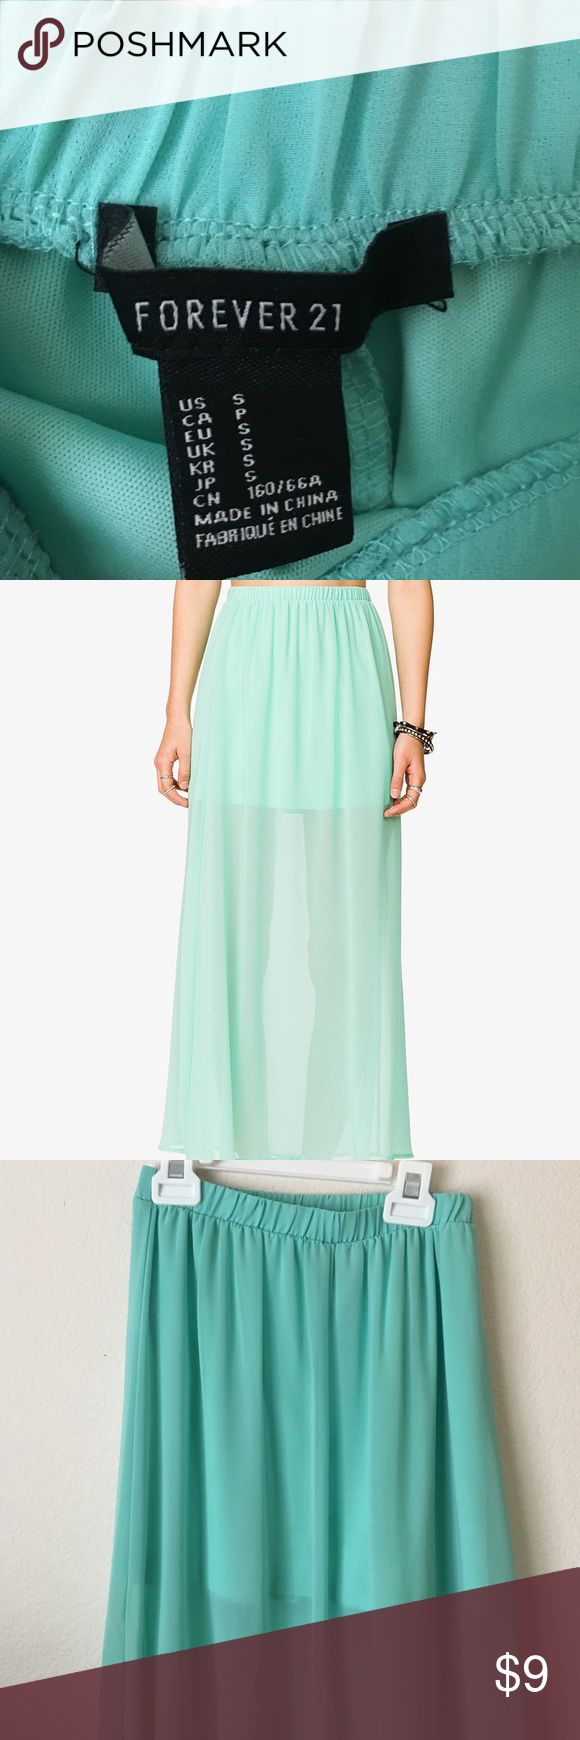 Mint Maxi Skirt Size Small Mint Maxi Skirt. From Forever 21. Super cute and boho. Great with sandals and a cute tank top. Forever 21 Skirts Maxi